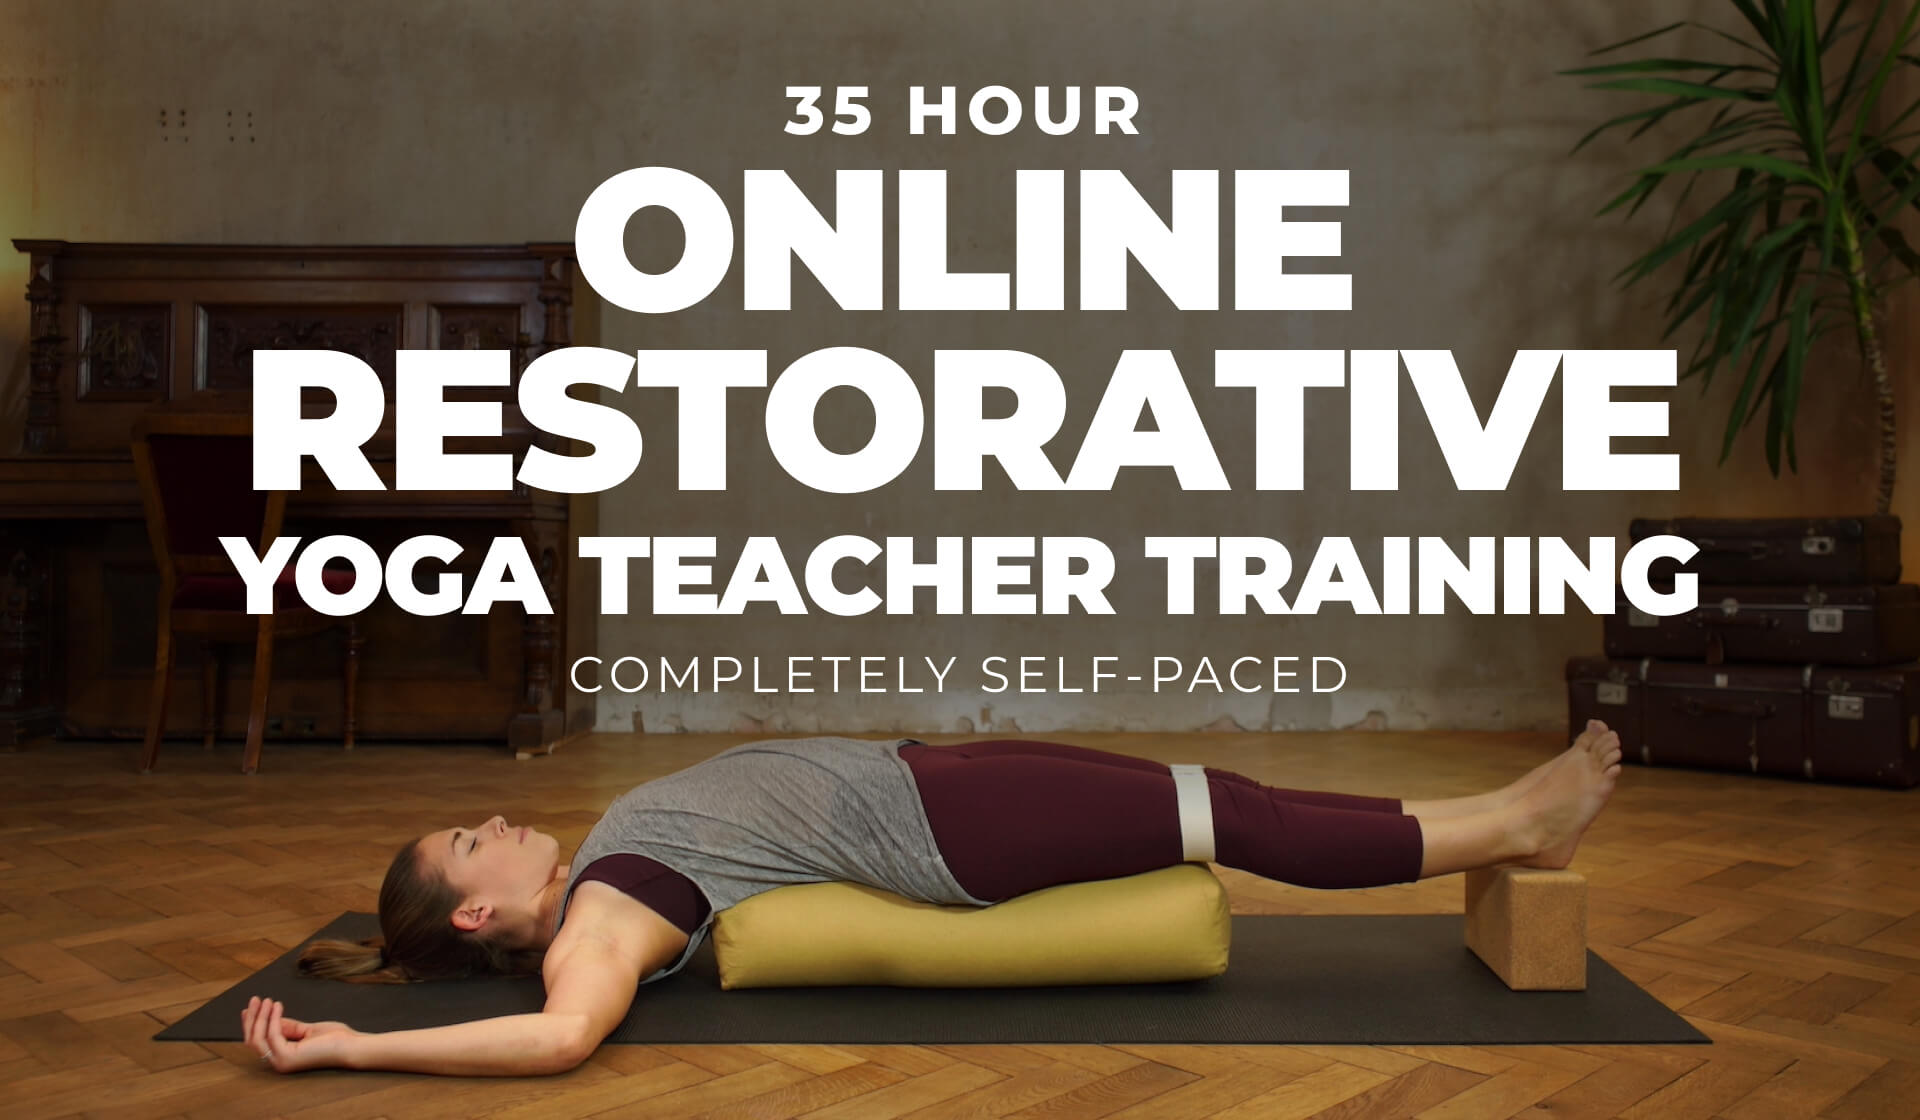 """Yoga teacher dressed in all maroon pants and a gray tank relaxing over a yoga bolster in a restorative yoga pose with the text """"35 Hour Online Restorative Yoga Teacher Training completely self-paced"""" written on the image"""